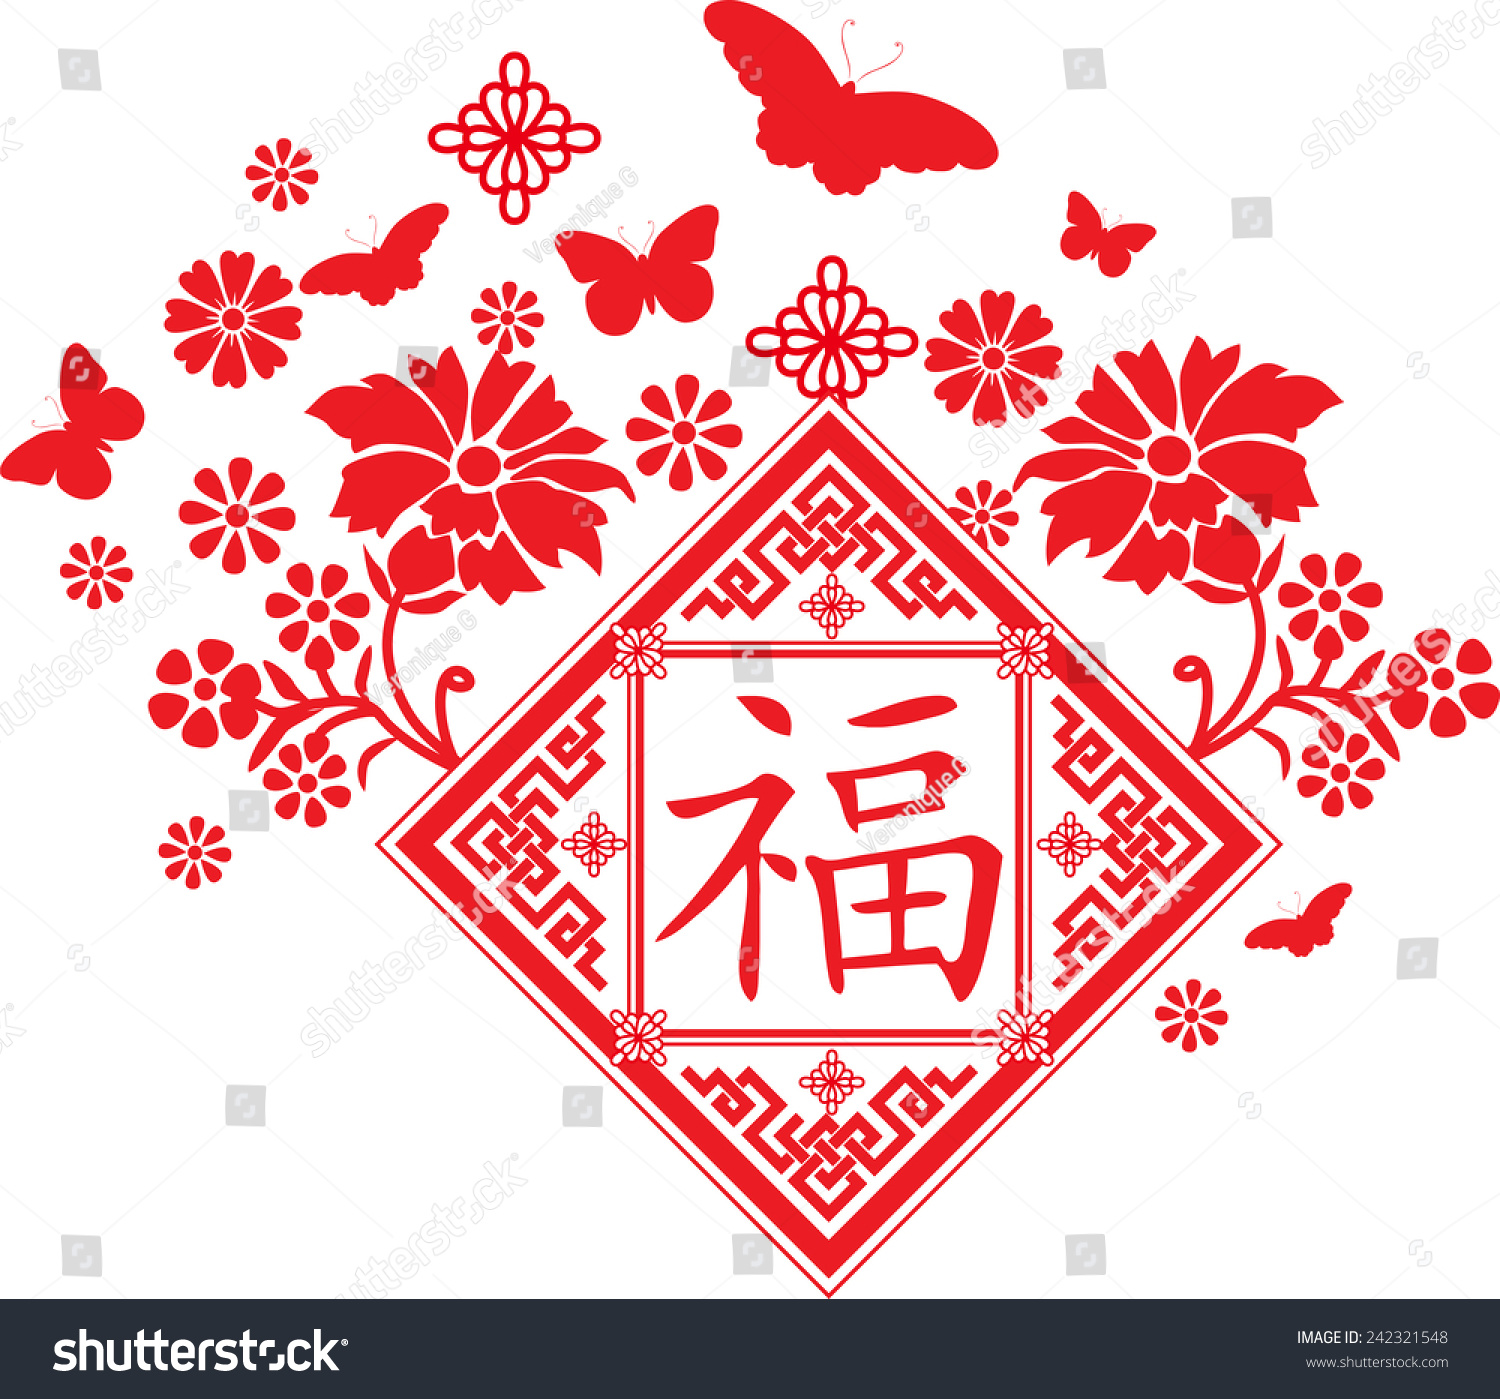 Traditional chinese spring festival ornament nature stock traditional chinese spring festival ornament with nature elements and symbol for happiness buycottarizona